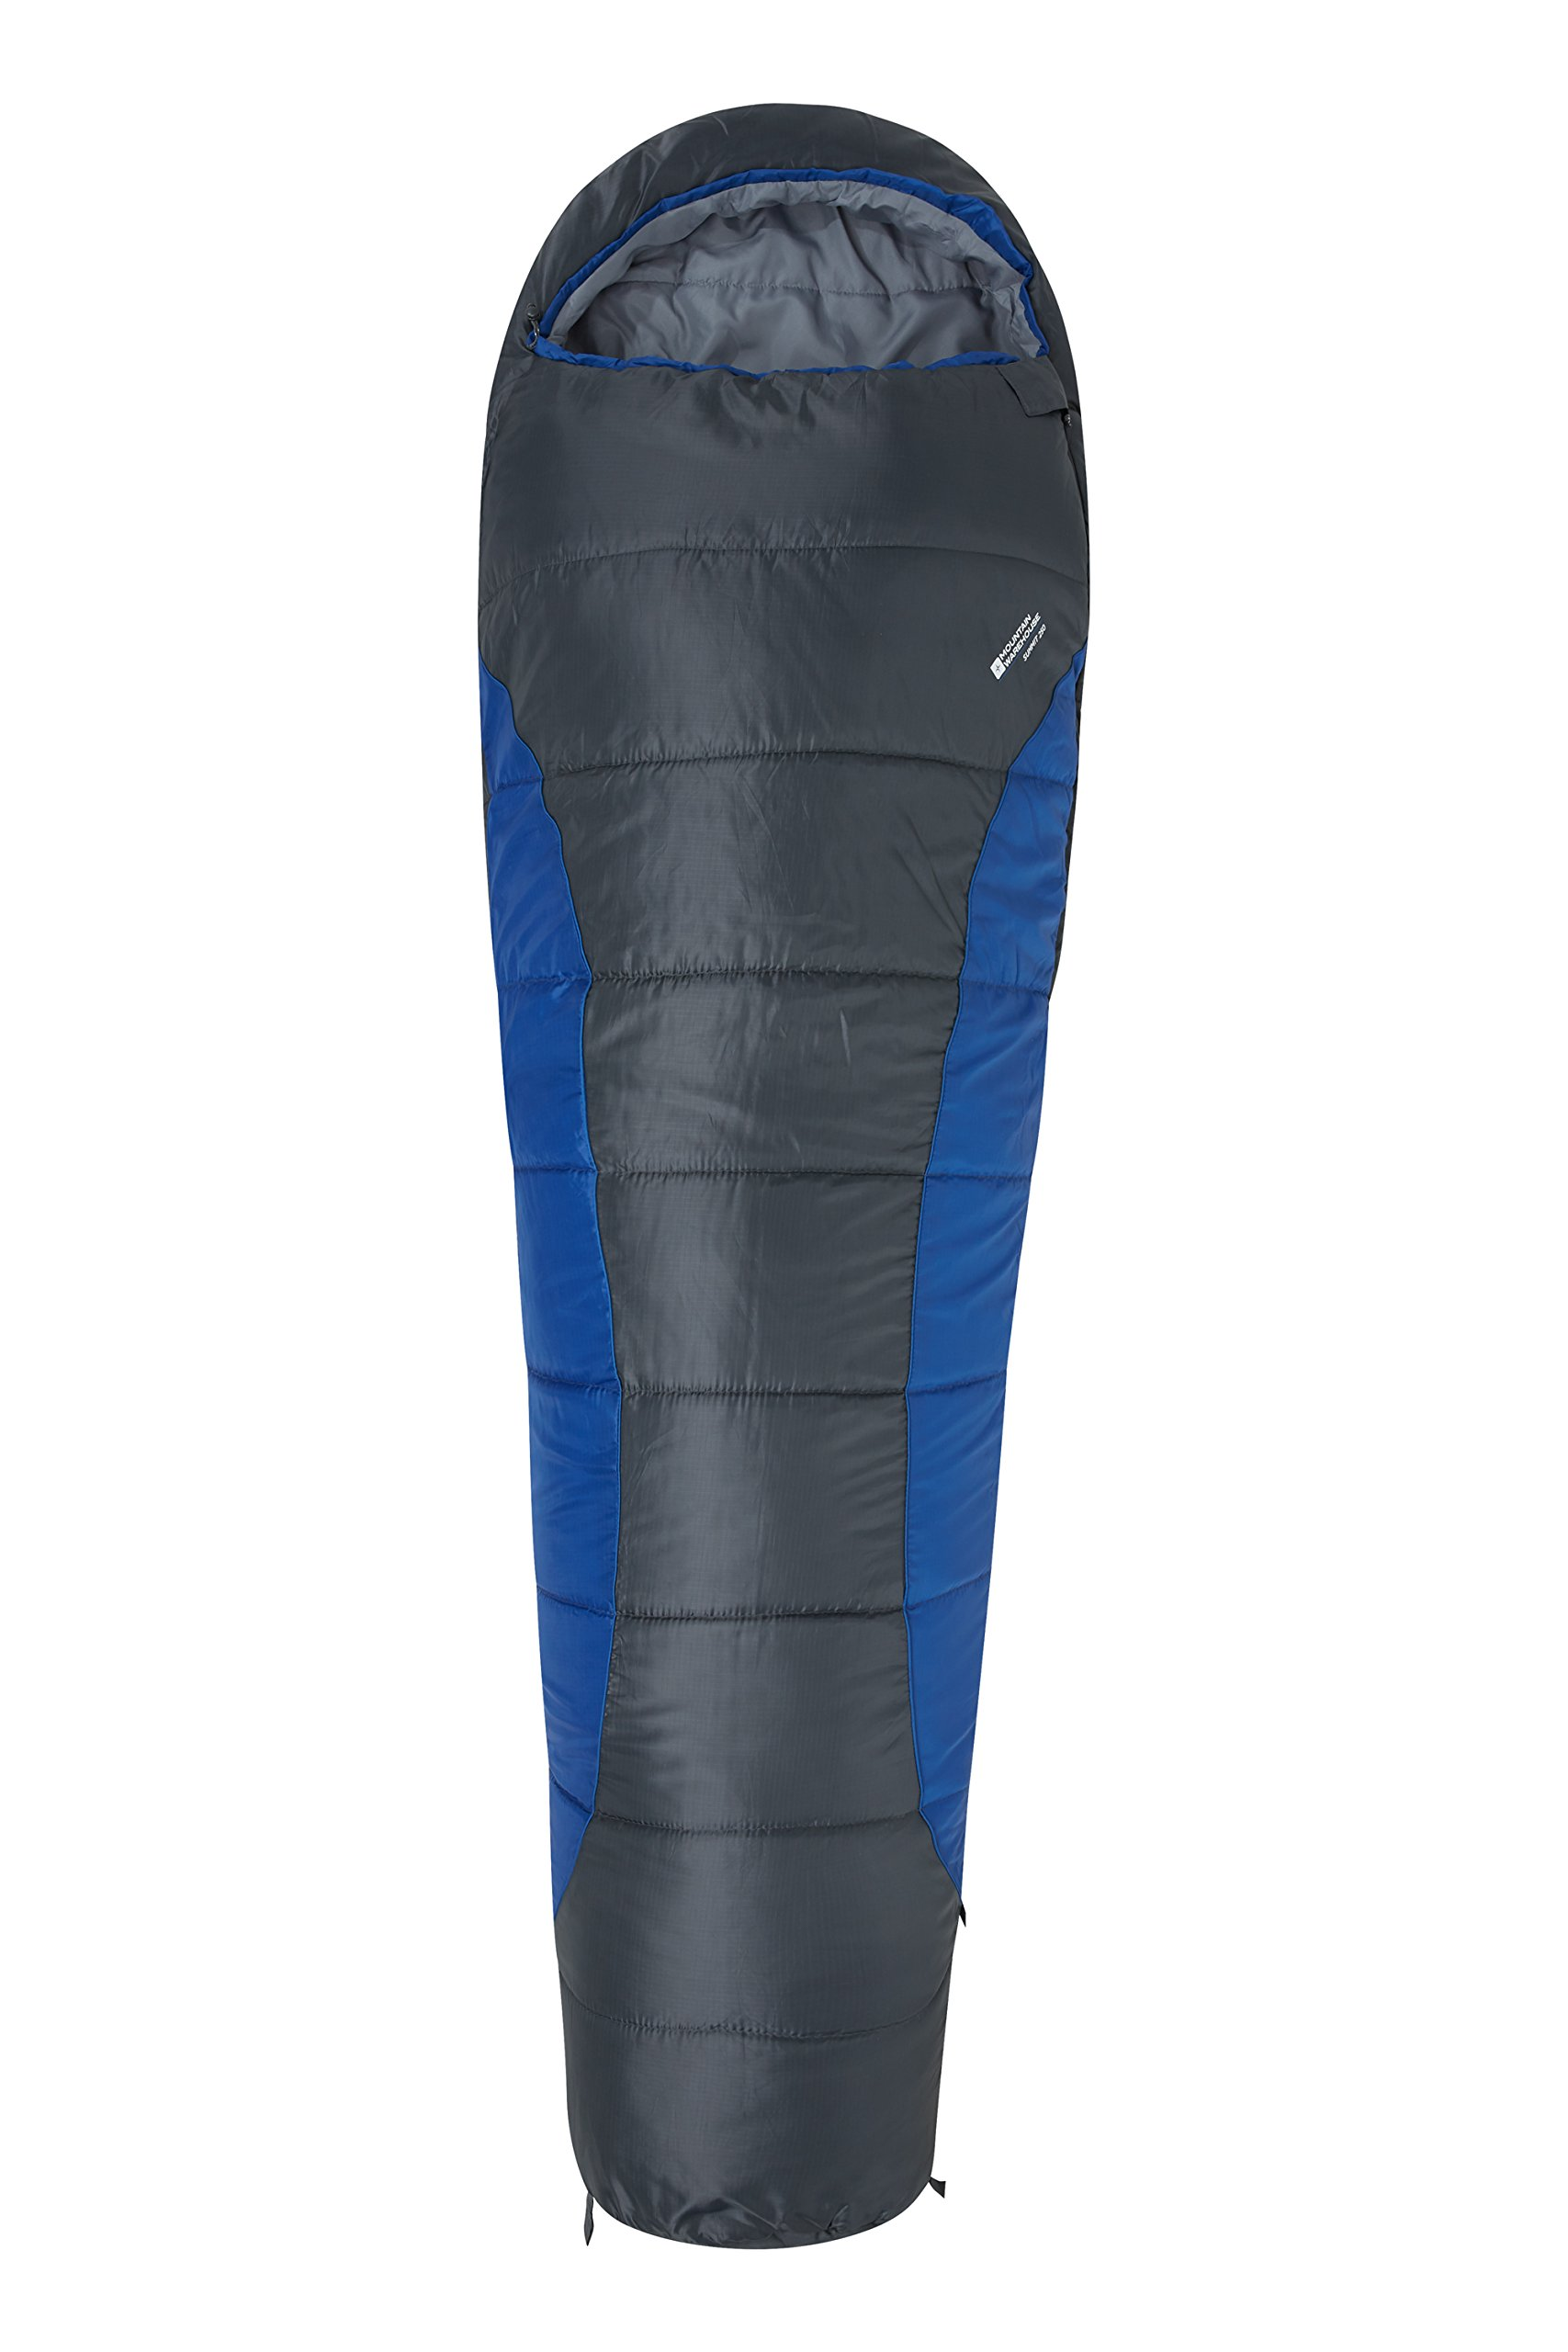 Mountain Warehouse Saco de dormir Summit 250 Azul Right Handed Zip product image